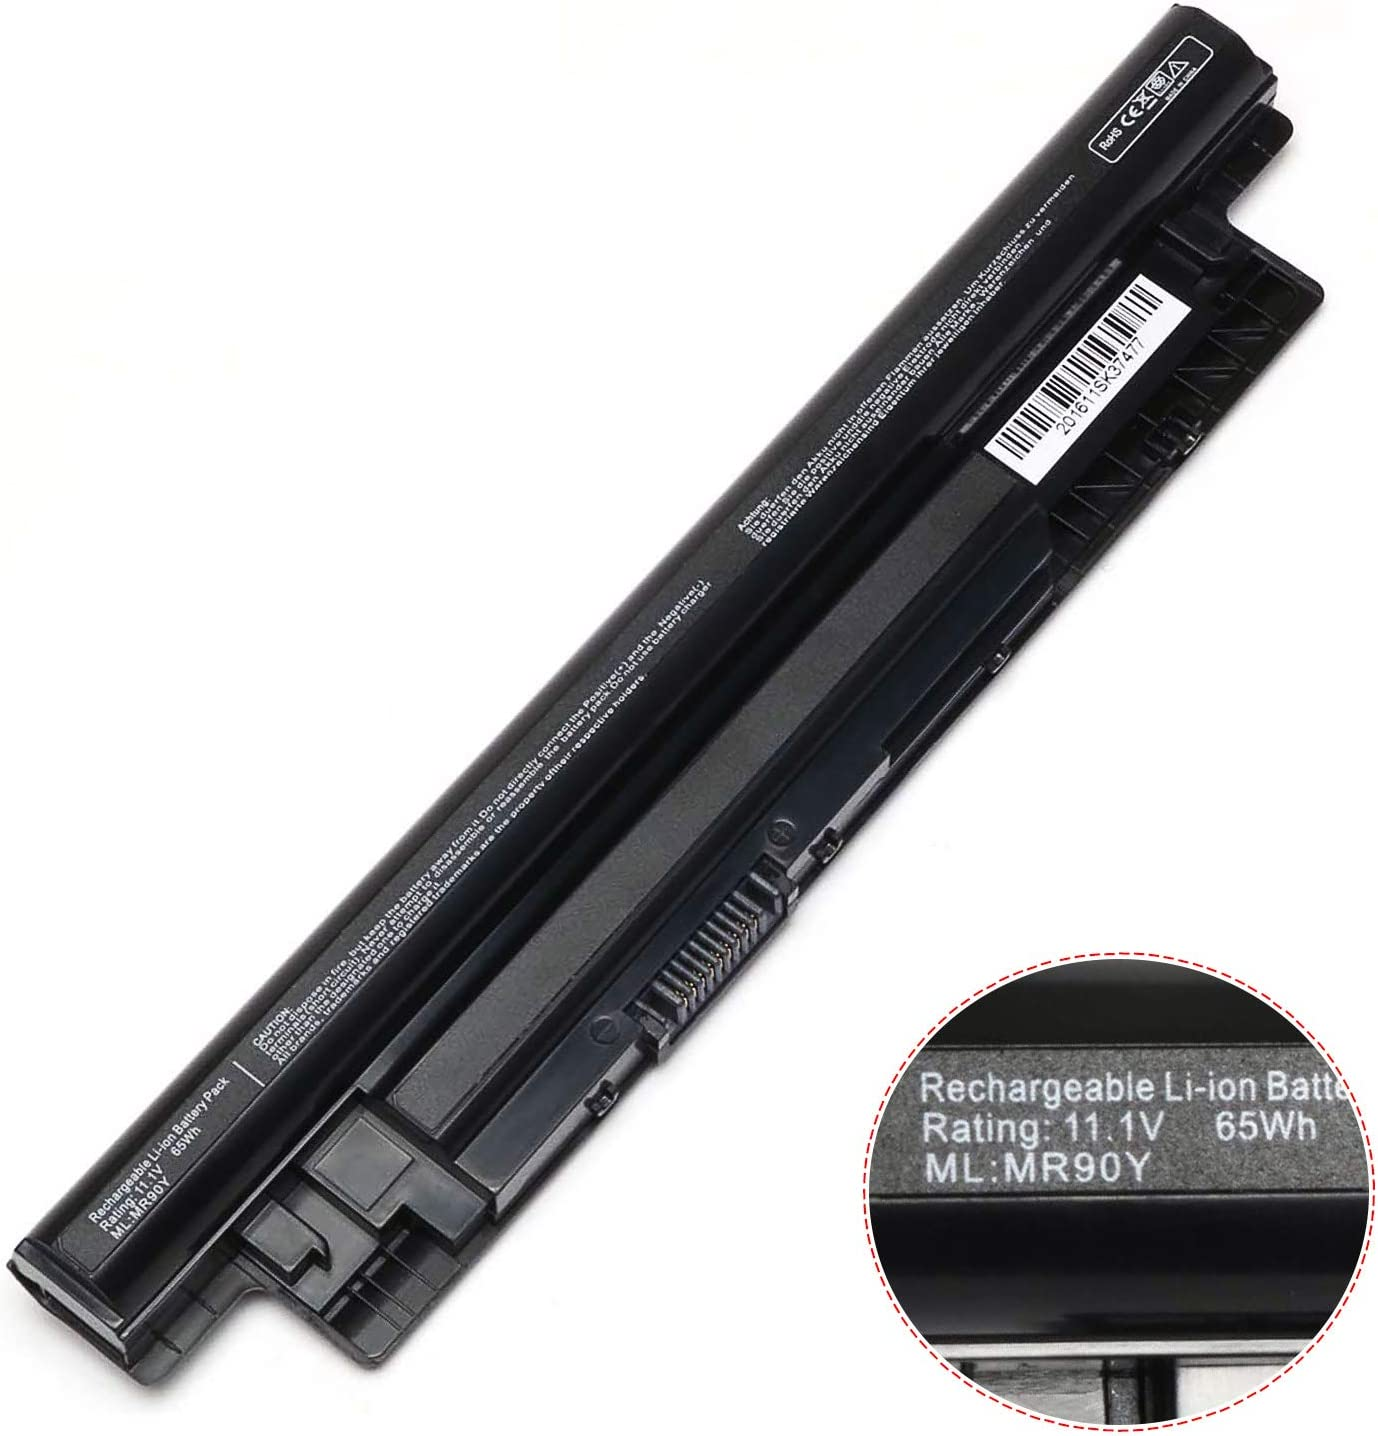 New MR90Y  XCMRD Laptop Battery Compatible with Dell Inspiron 15 5000 Series 15-3521 15-3537 15-3541 15-3542 15-5521 15R-N3521 15R-N5521 15R-1528R - 12 Months Warranty